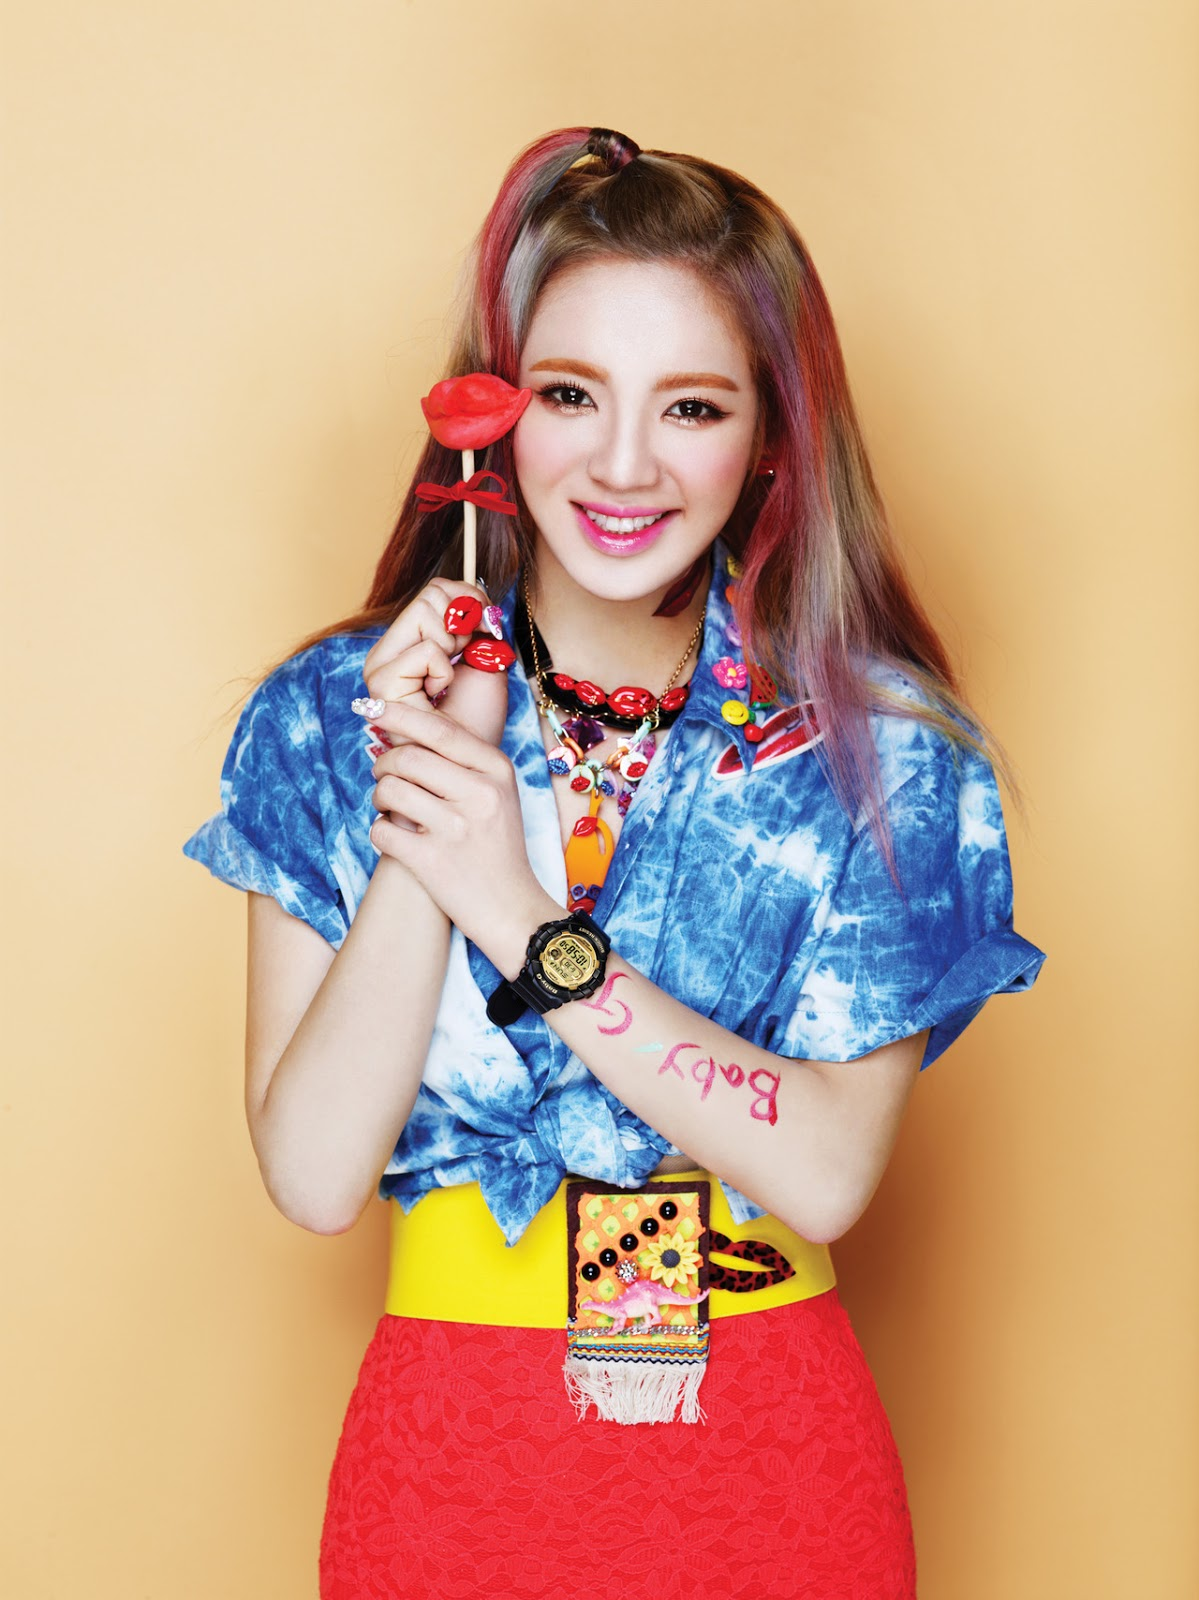 Girls generation snsd snsd kiss me baby g by casio hyoyeon